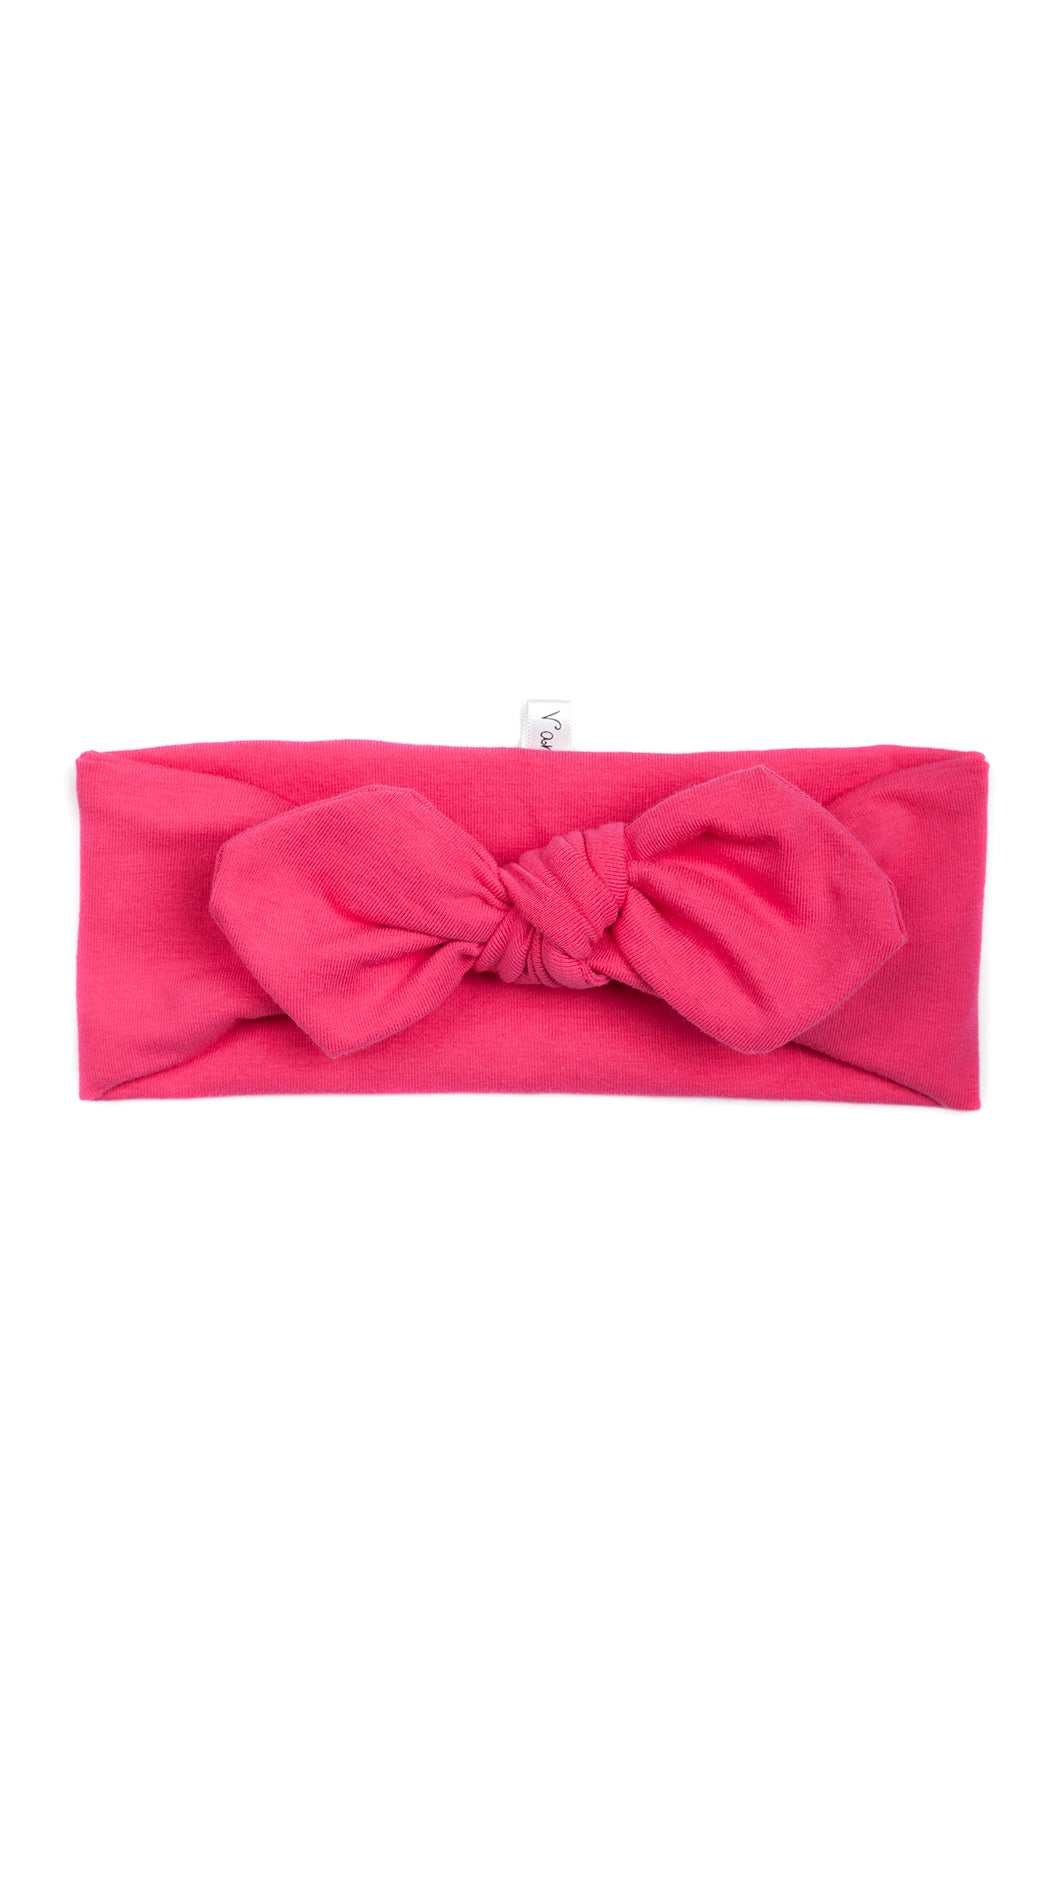 Bandeau Extensible : Simplement Vanille Rose Fuchsia